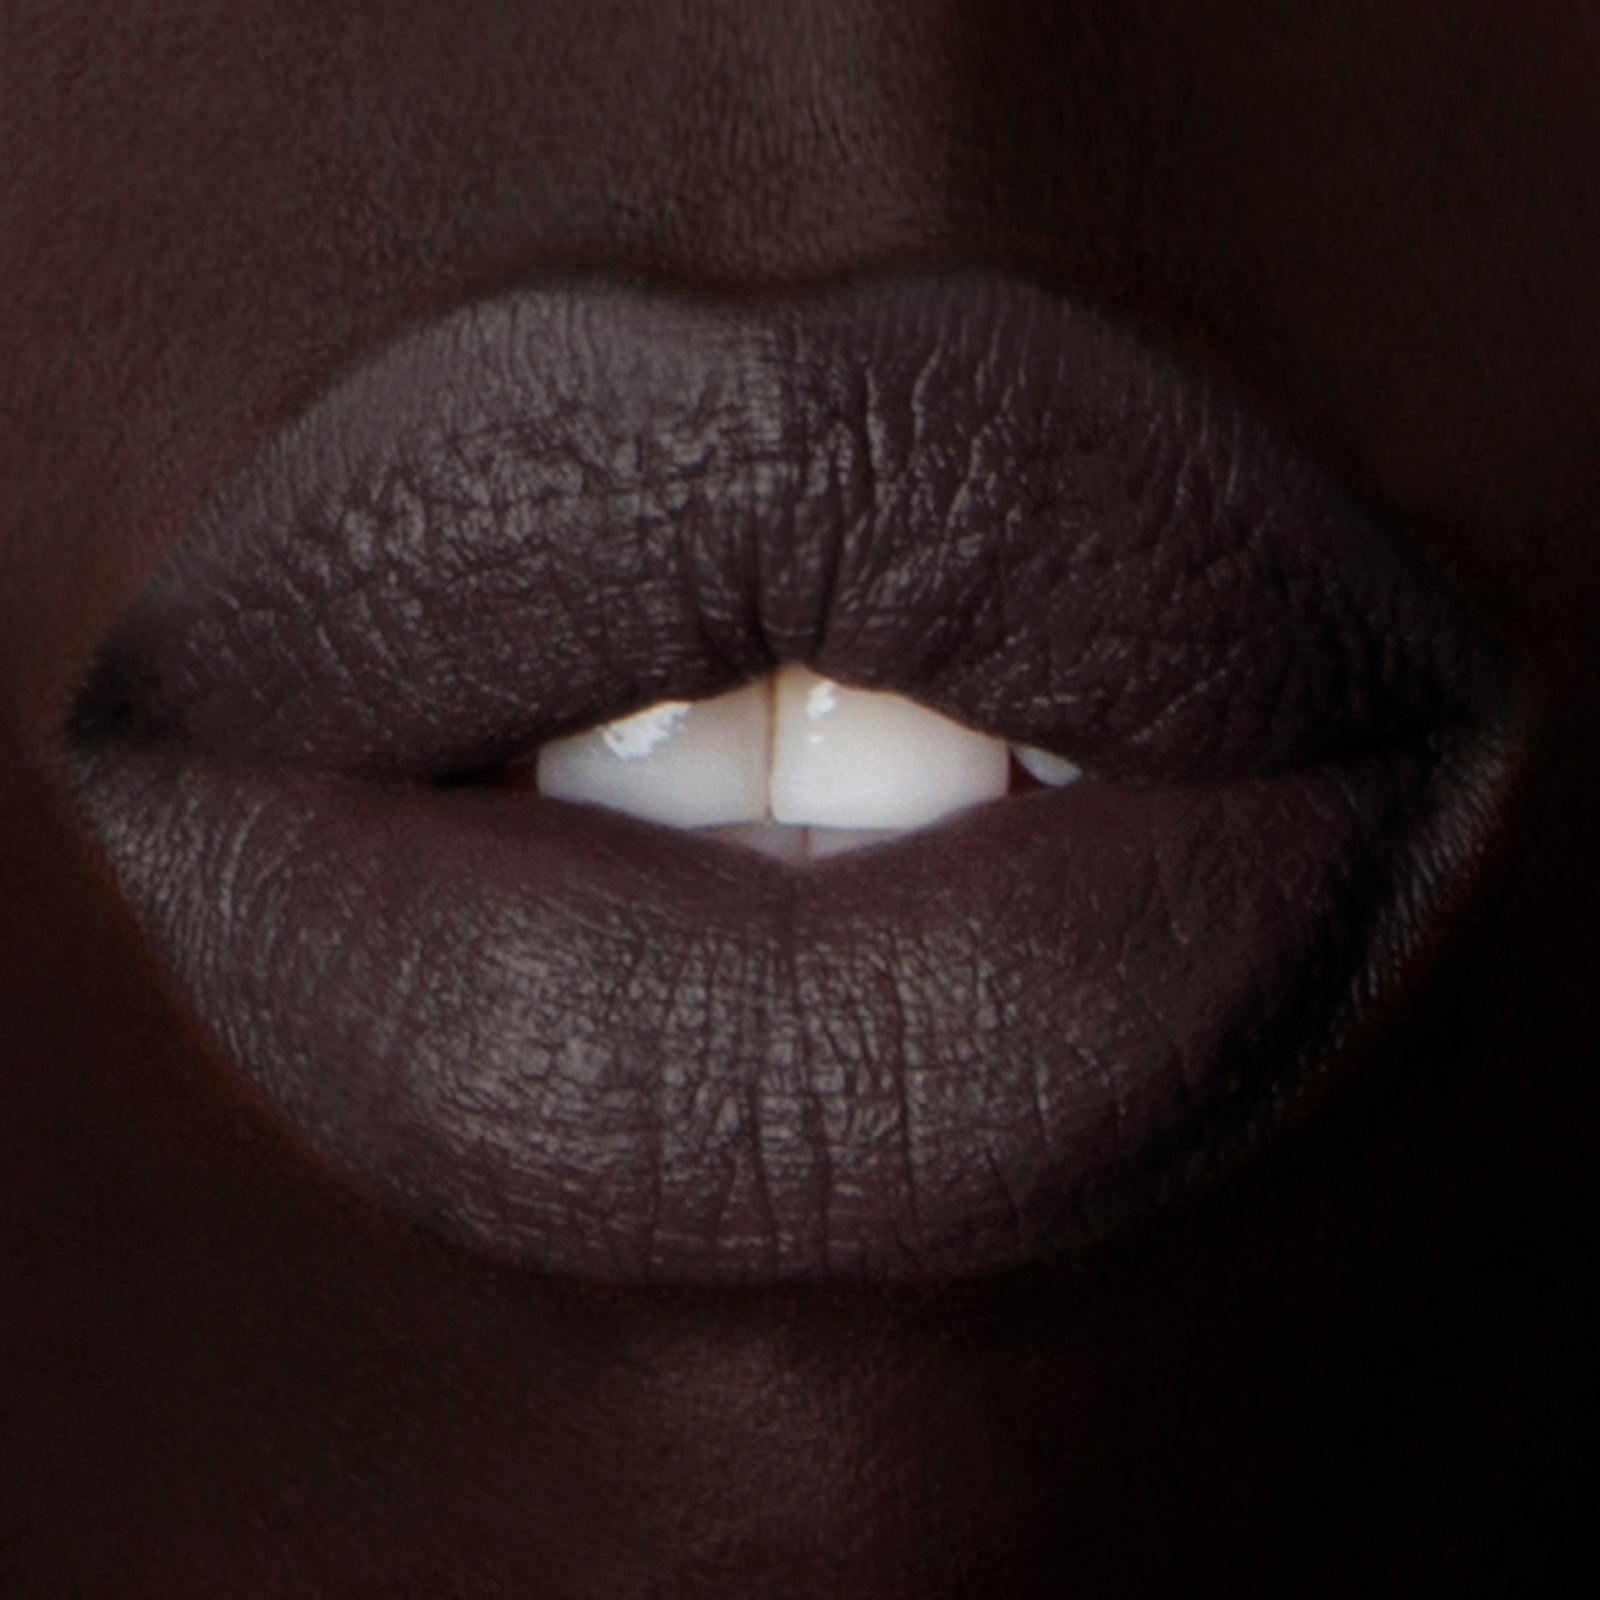 Black Locust | Enchanted Lip Sheer - Rituel de Fille